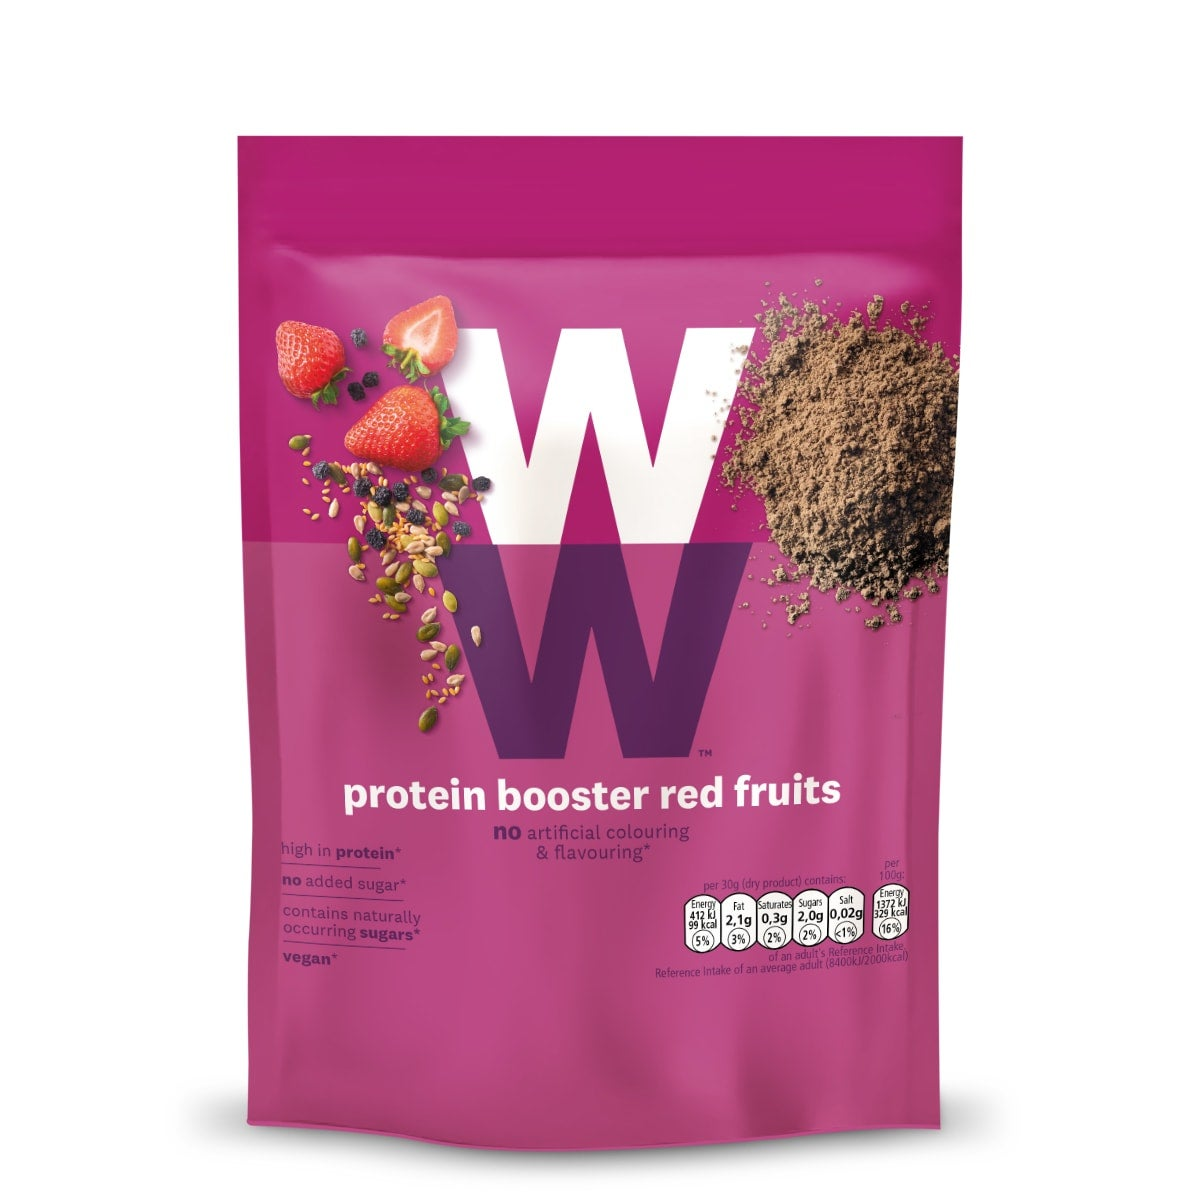 WW Protein Powder Red Fruits, high in protein, use for cooking, toppings or smoothies, no added sugar, 2 SmartPoints per portion, gluten free, suitable for vegans